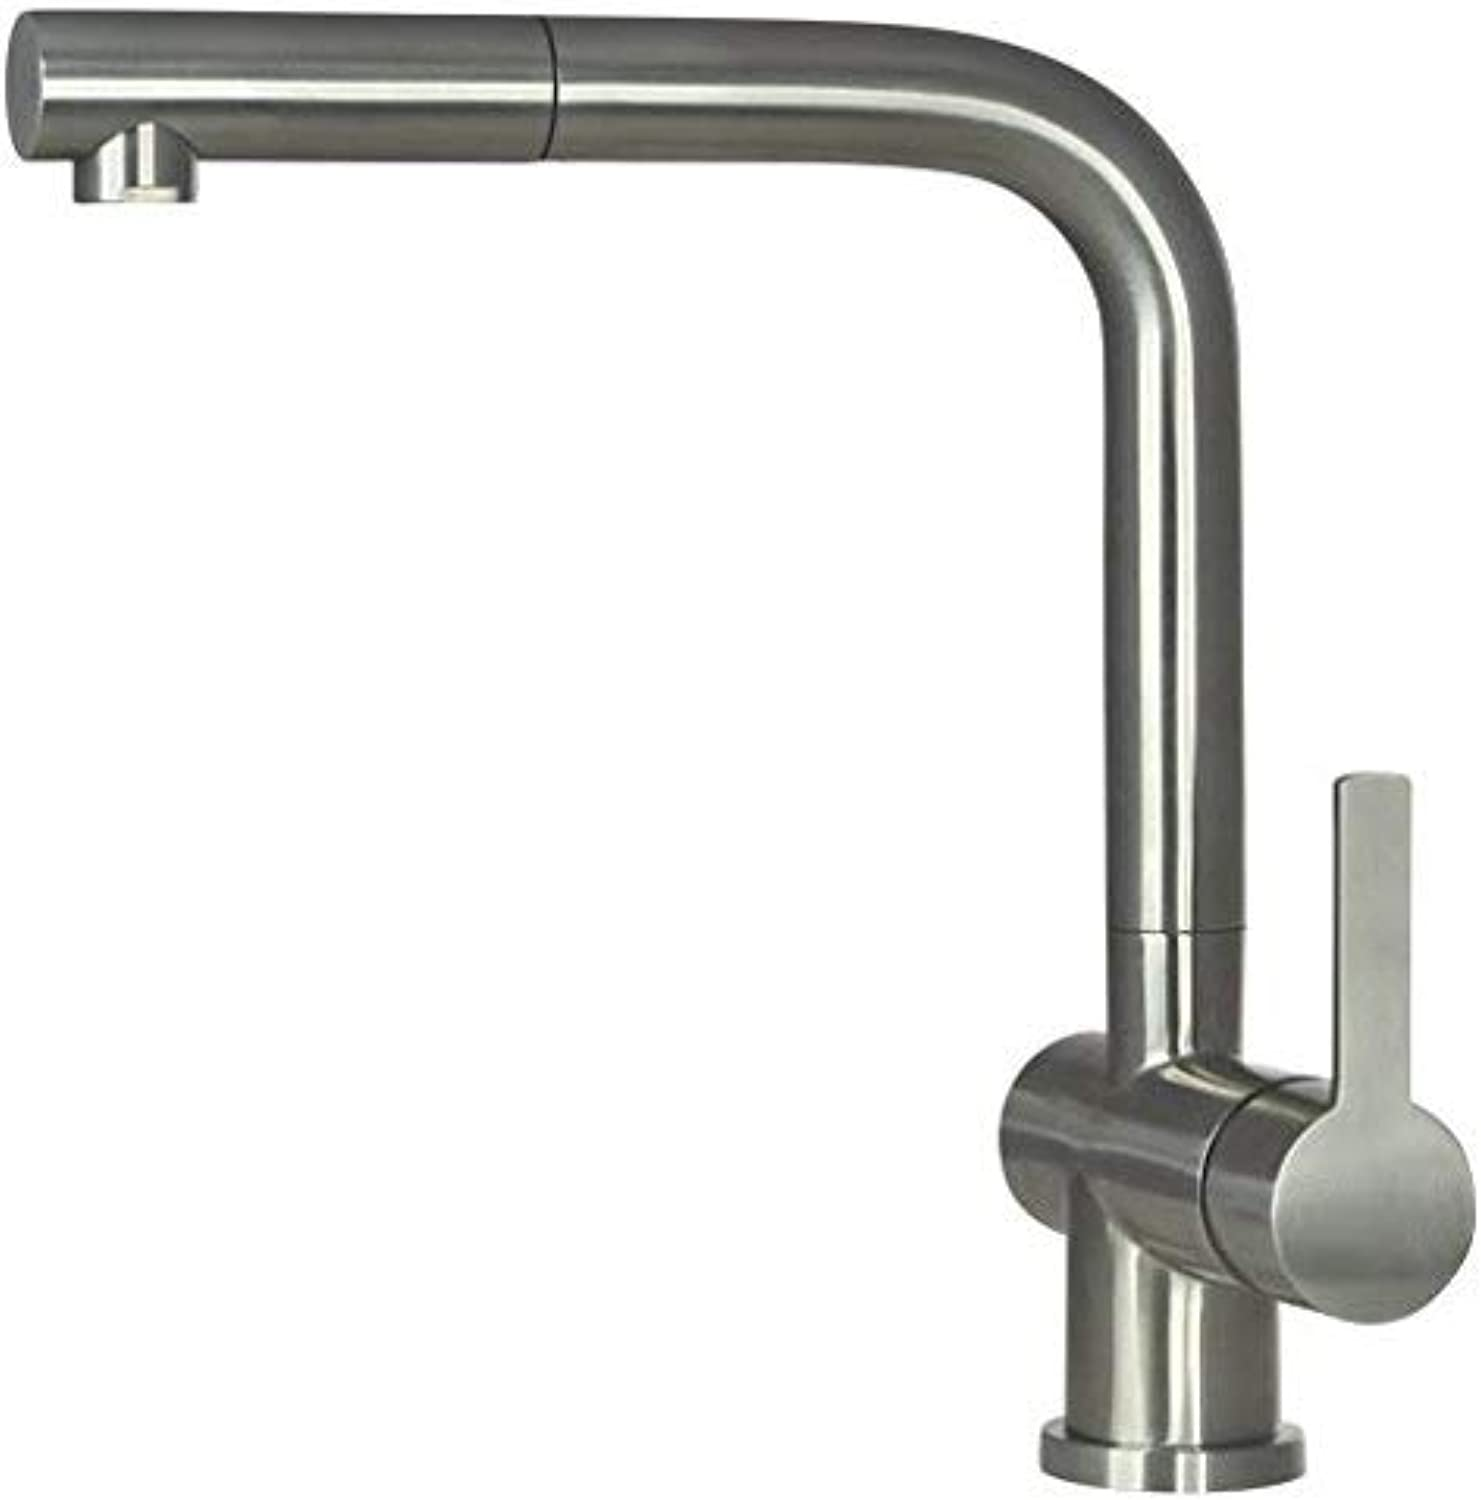 Kitchen Faucet  Kitchen Tap Mizzo - Kitchen Sink Tap Avora - Kitchen Sink Faucet Stainless Steel - Faucet Mixer Taps 360 degree swivel - Kitchen Sink Taps